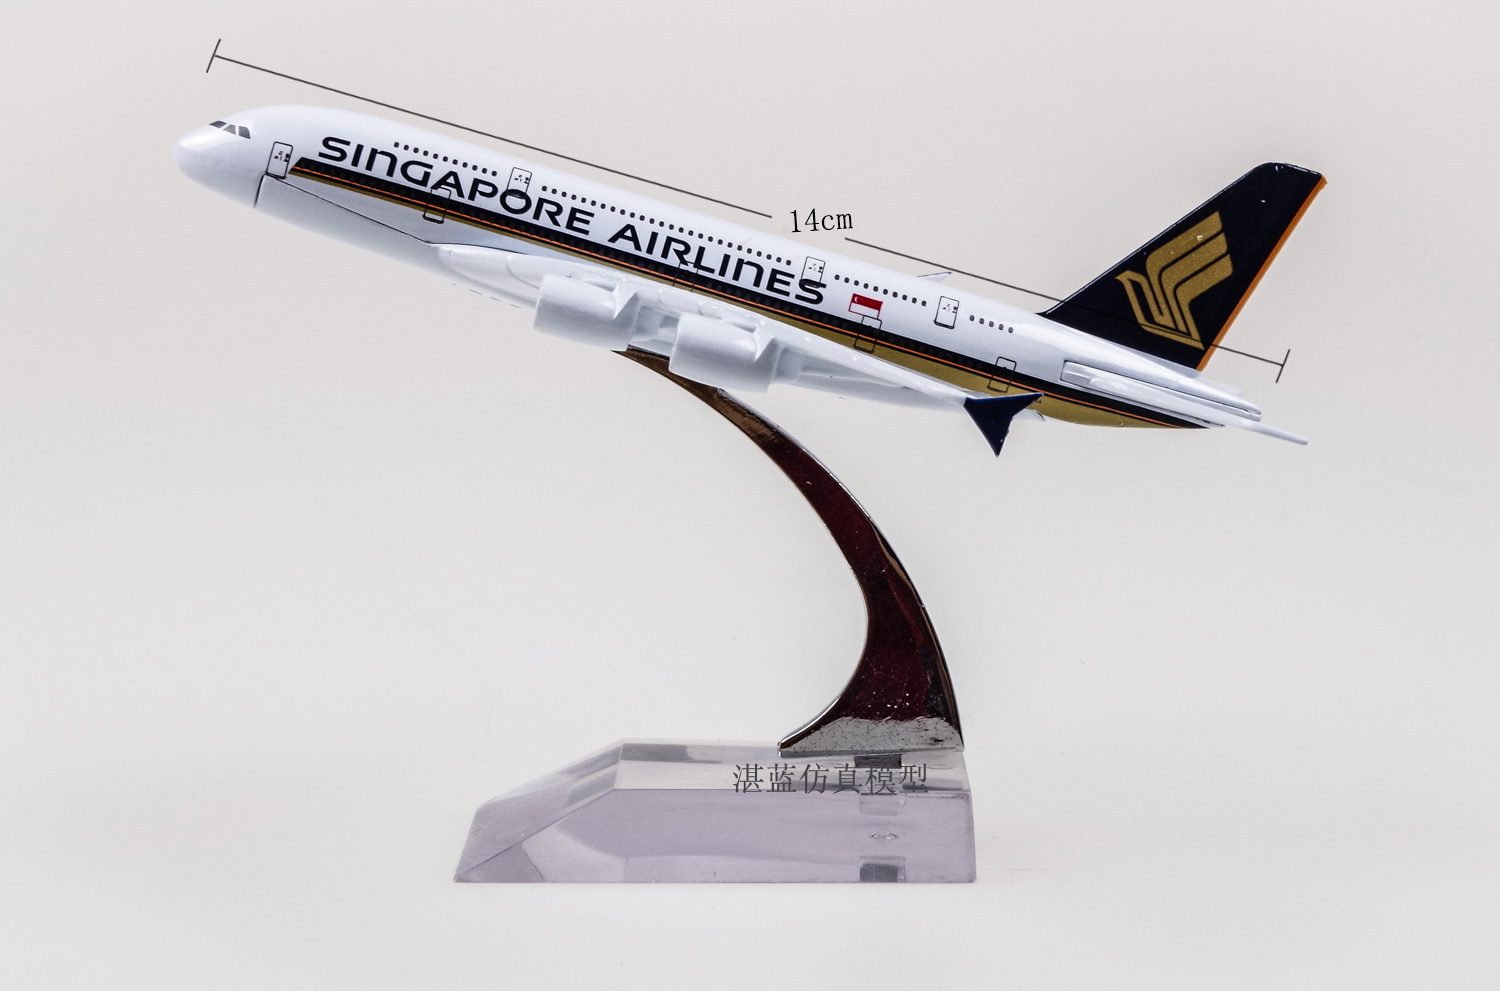 Brand New 1/6 Scale Airplane Model Toys SINGAPORE AIRLINES Airbus A380 Airliner Diecast Metal Plane Model Toy For Gift(China (Mainland))